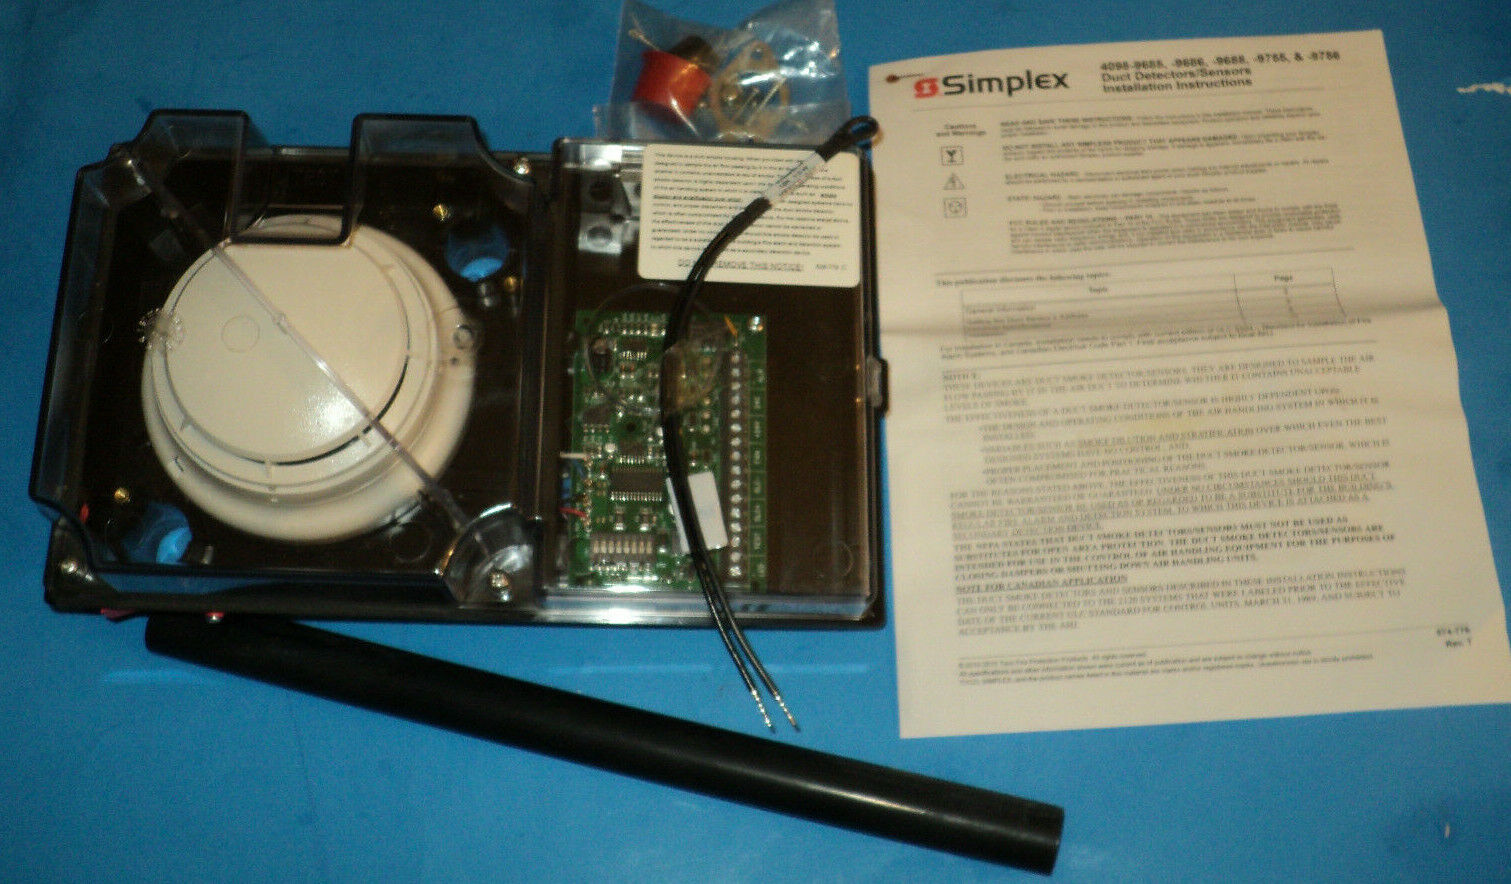 Simplex 4098 9687 Standalone Duct Detector For Sale Online Ebay